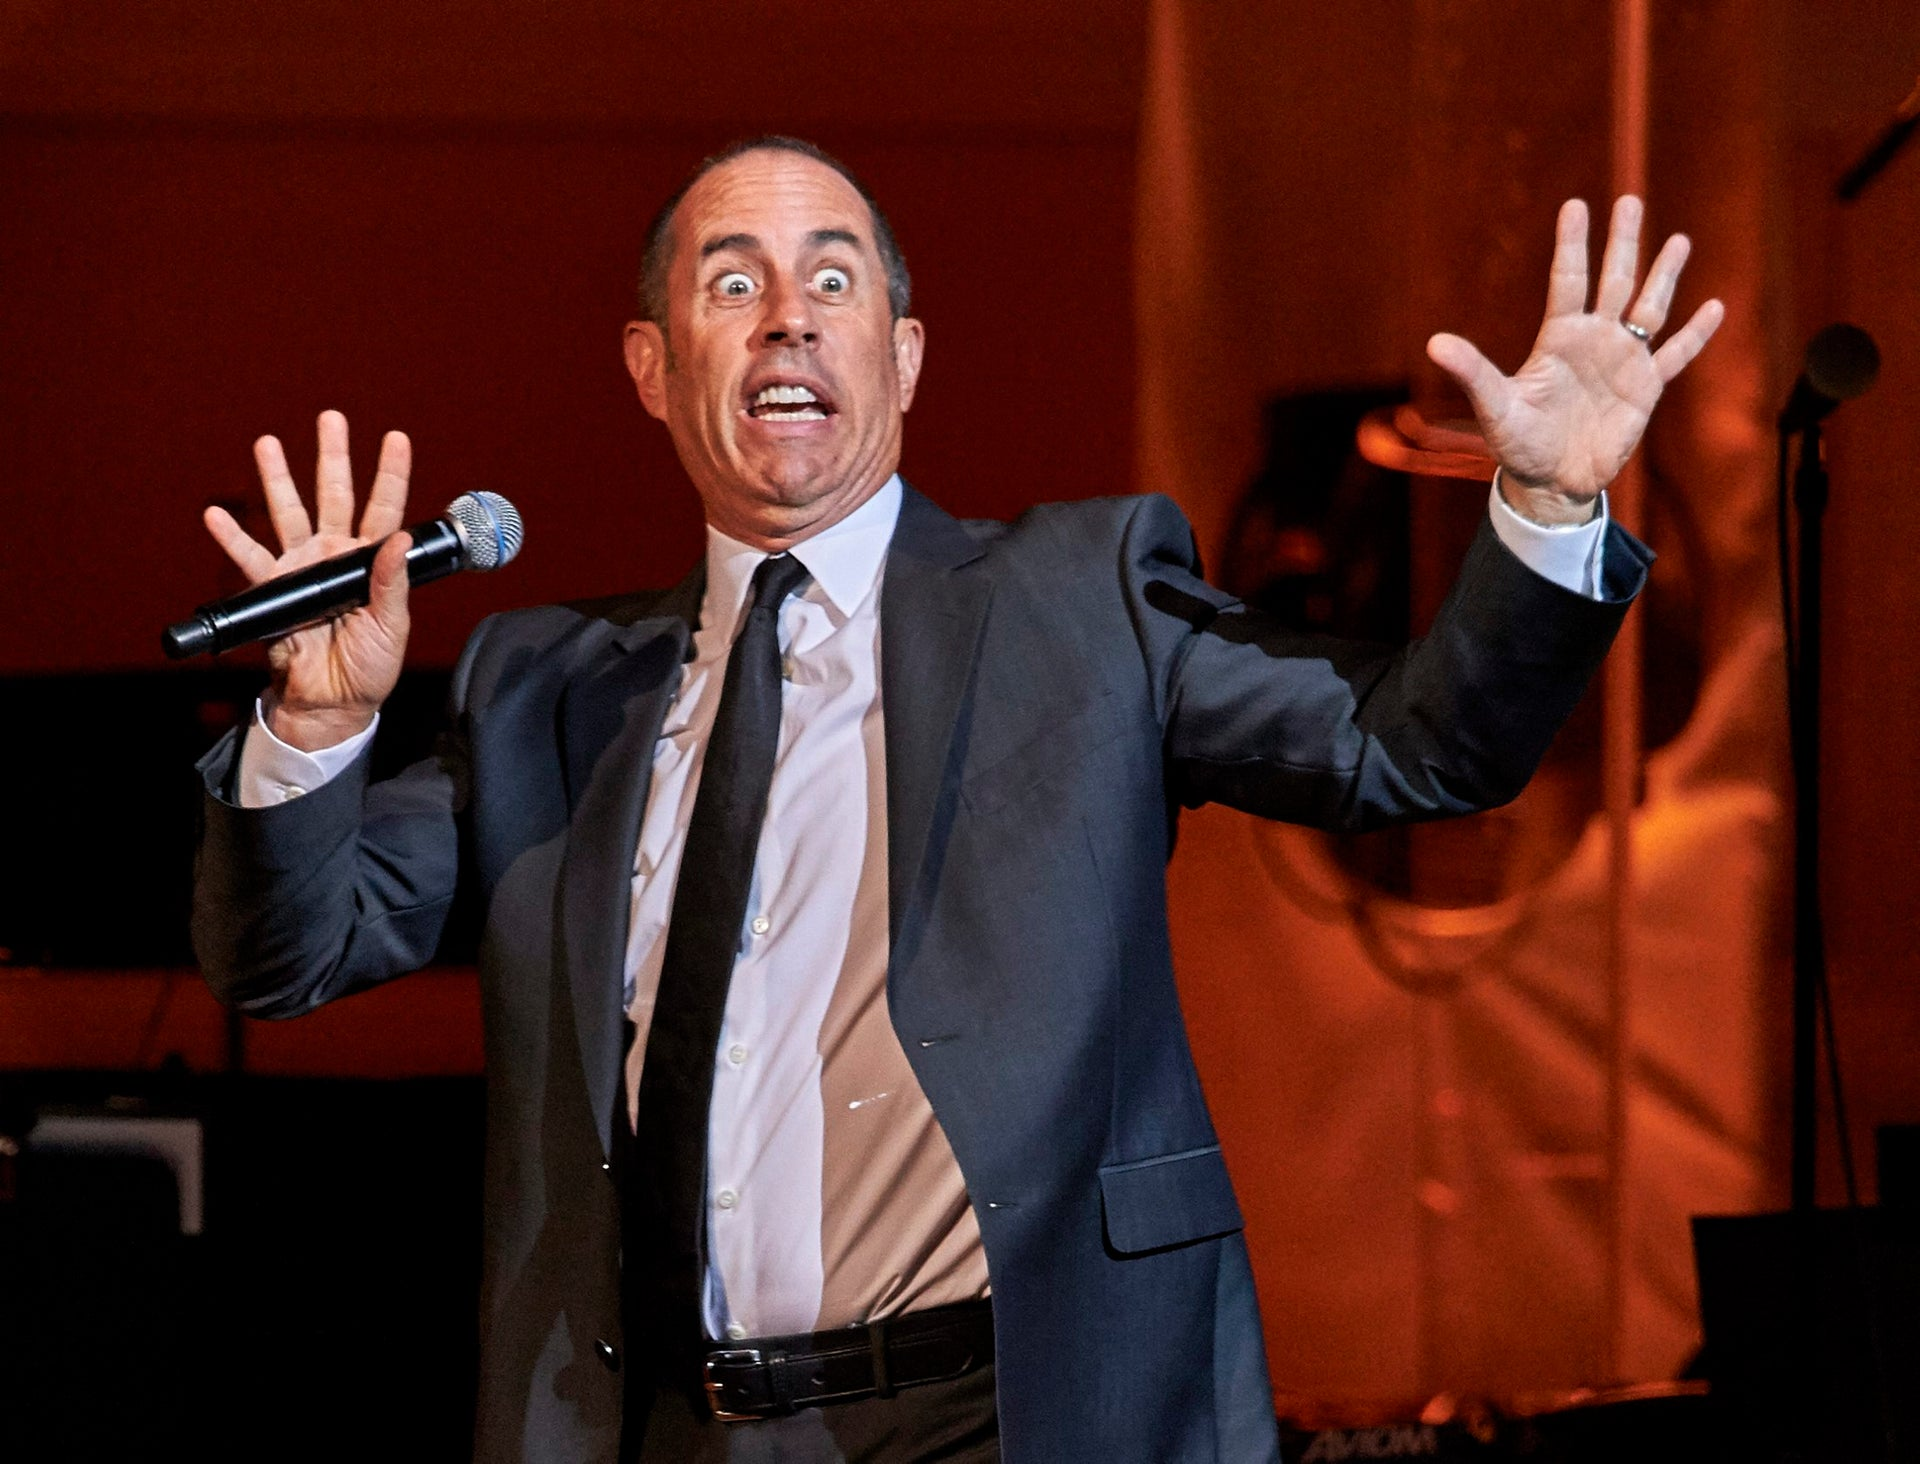 In this November 4, 2015 file photo, Jerry Seinfeld performs at the David Lynch Foundation Benefit Concert at Carnegie Hall in New York.